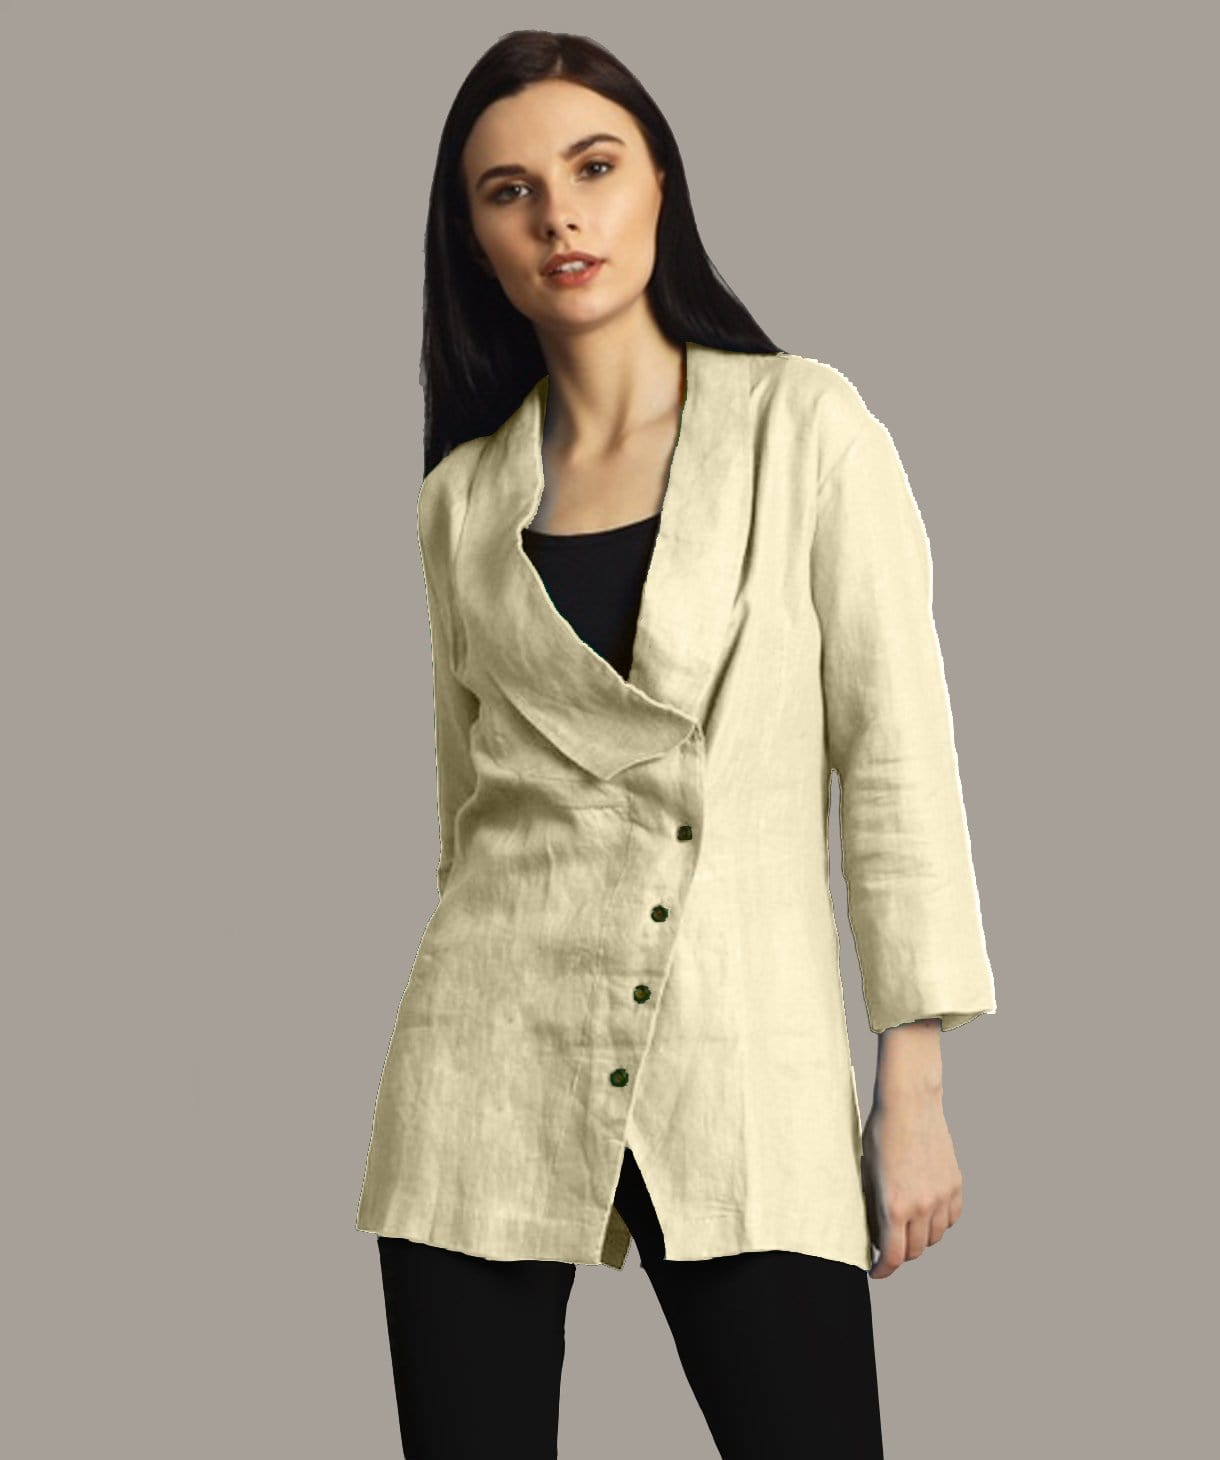 Uptownie Plus Off White Linen Jacket Style Tunic. FLAT 200 OFF